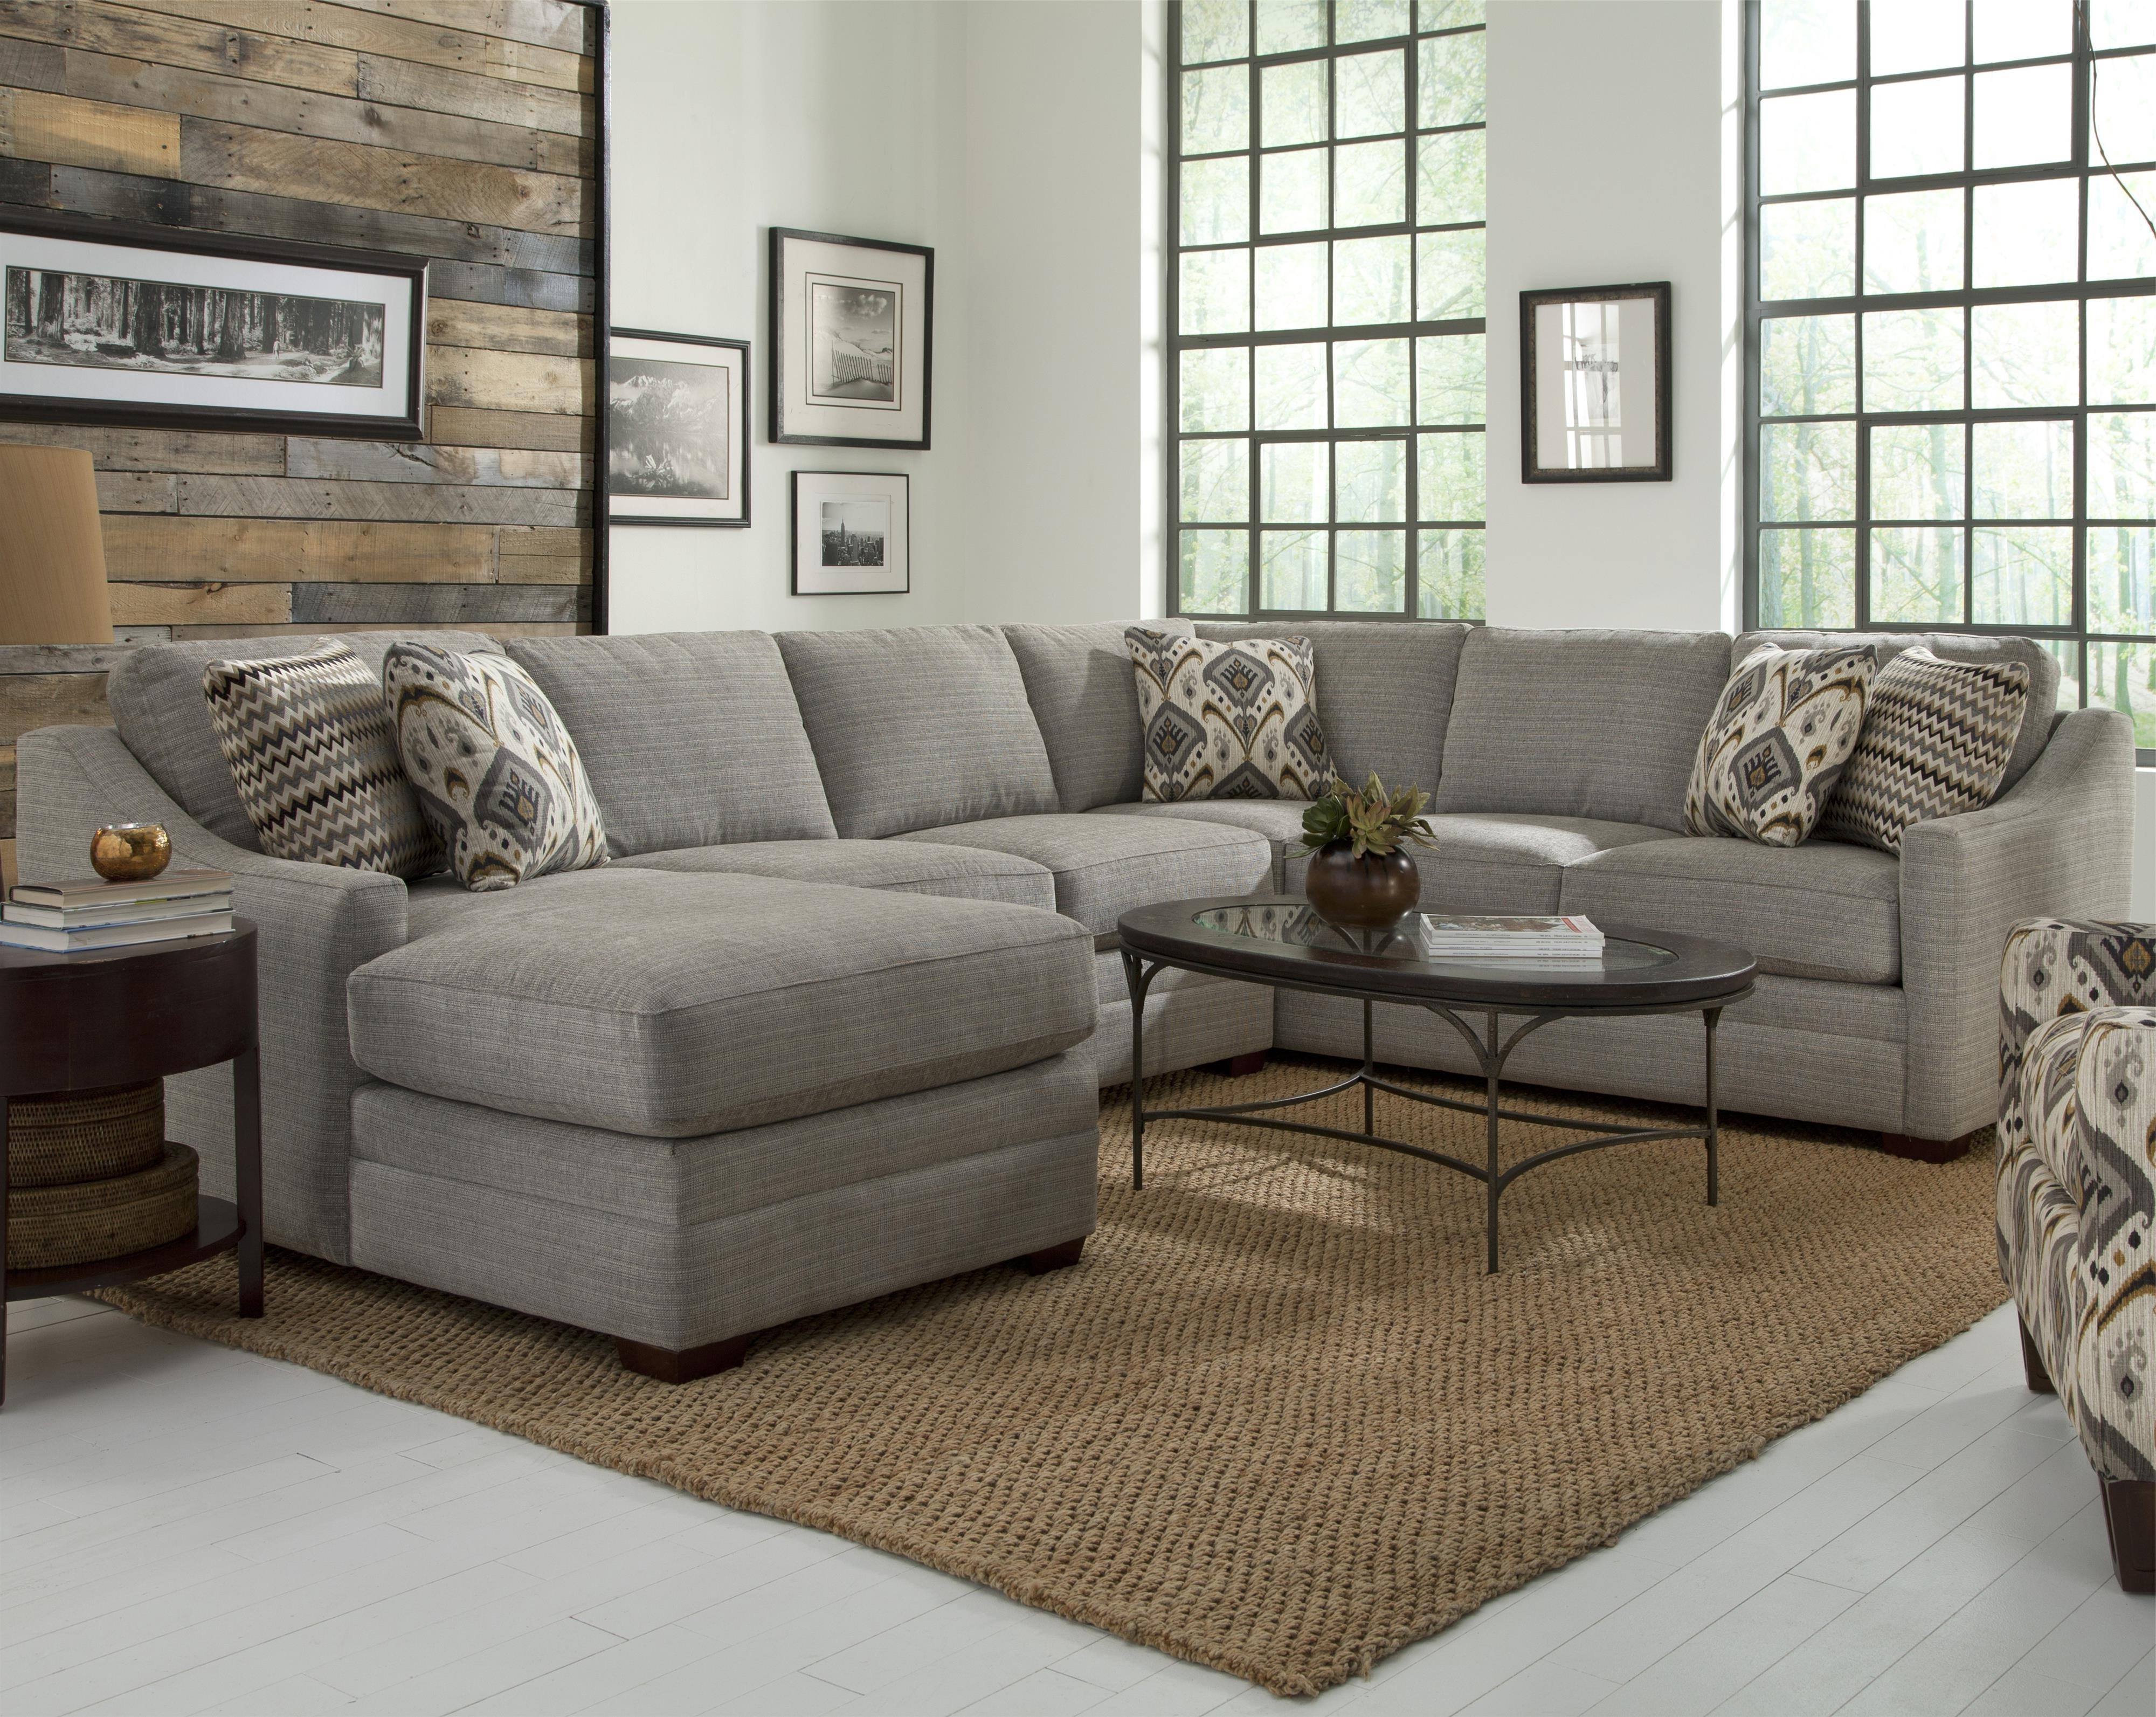 Customizable Four Piece Sectional Sofacraftmaster (View 4 of 20)